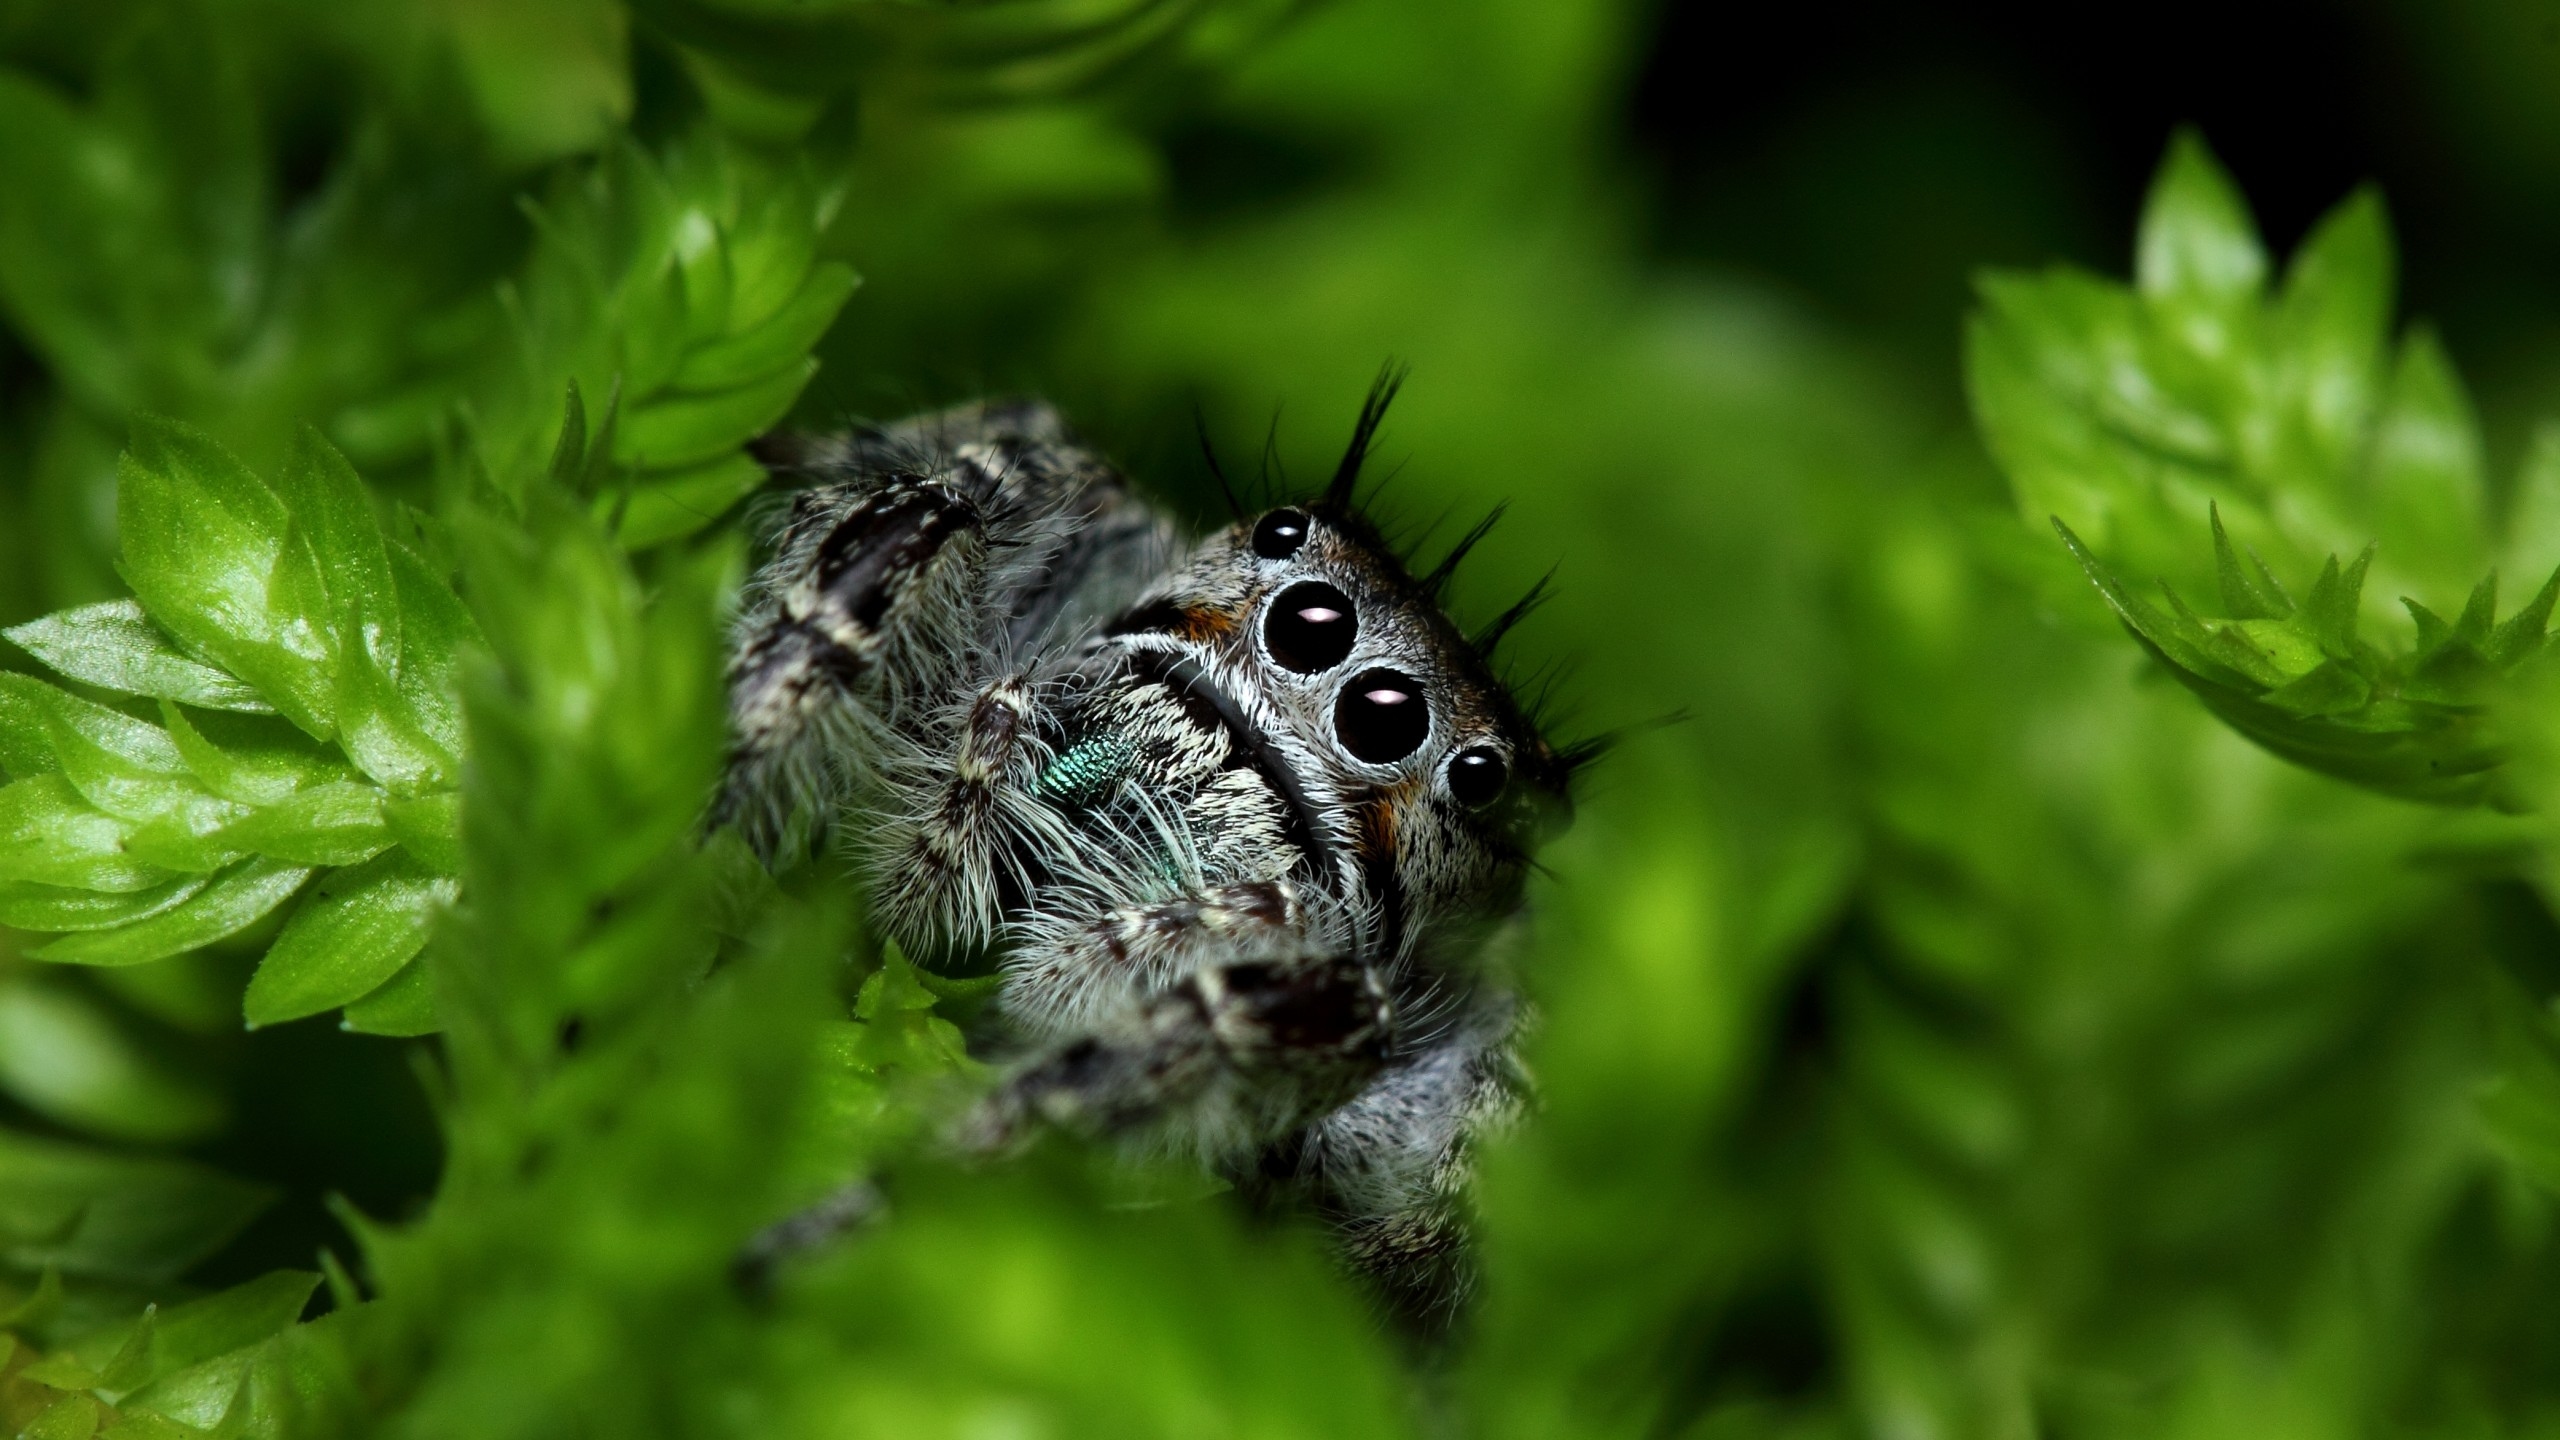 Wallpaper Jumping Spider Eyes Insects Leaves Green Nature Cute Animals 1527